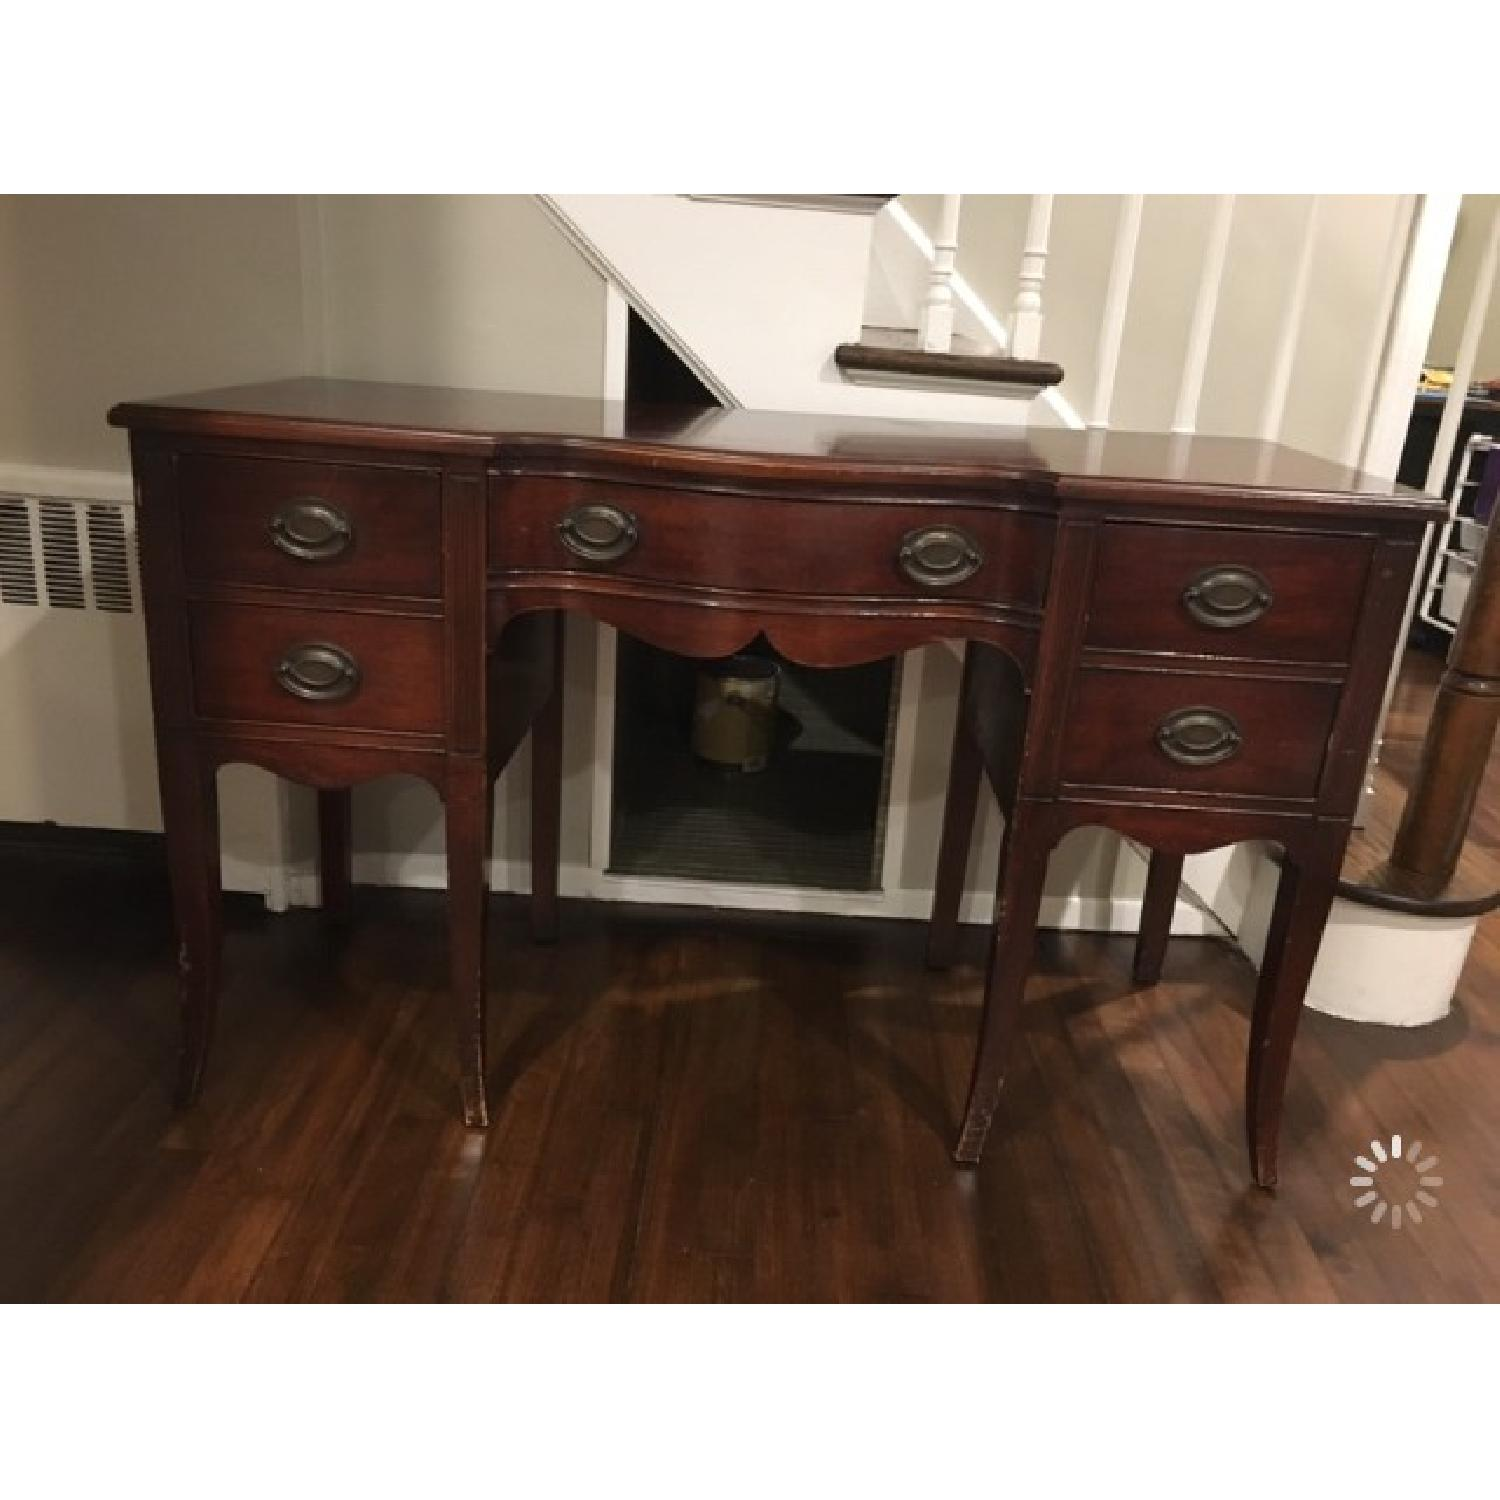 Antique Dressing Table-0